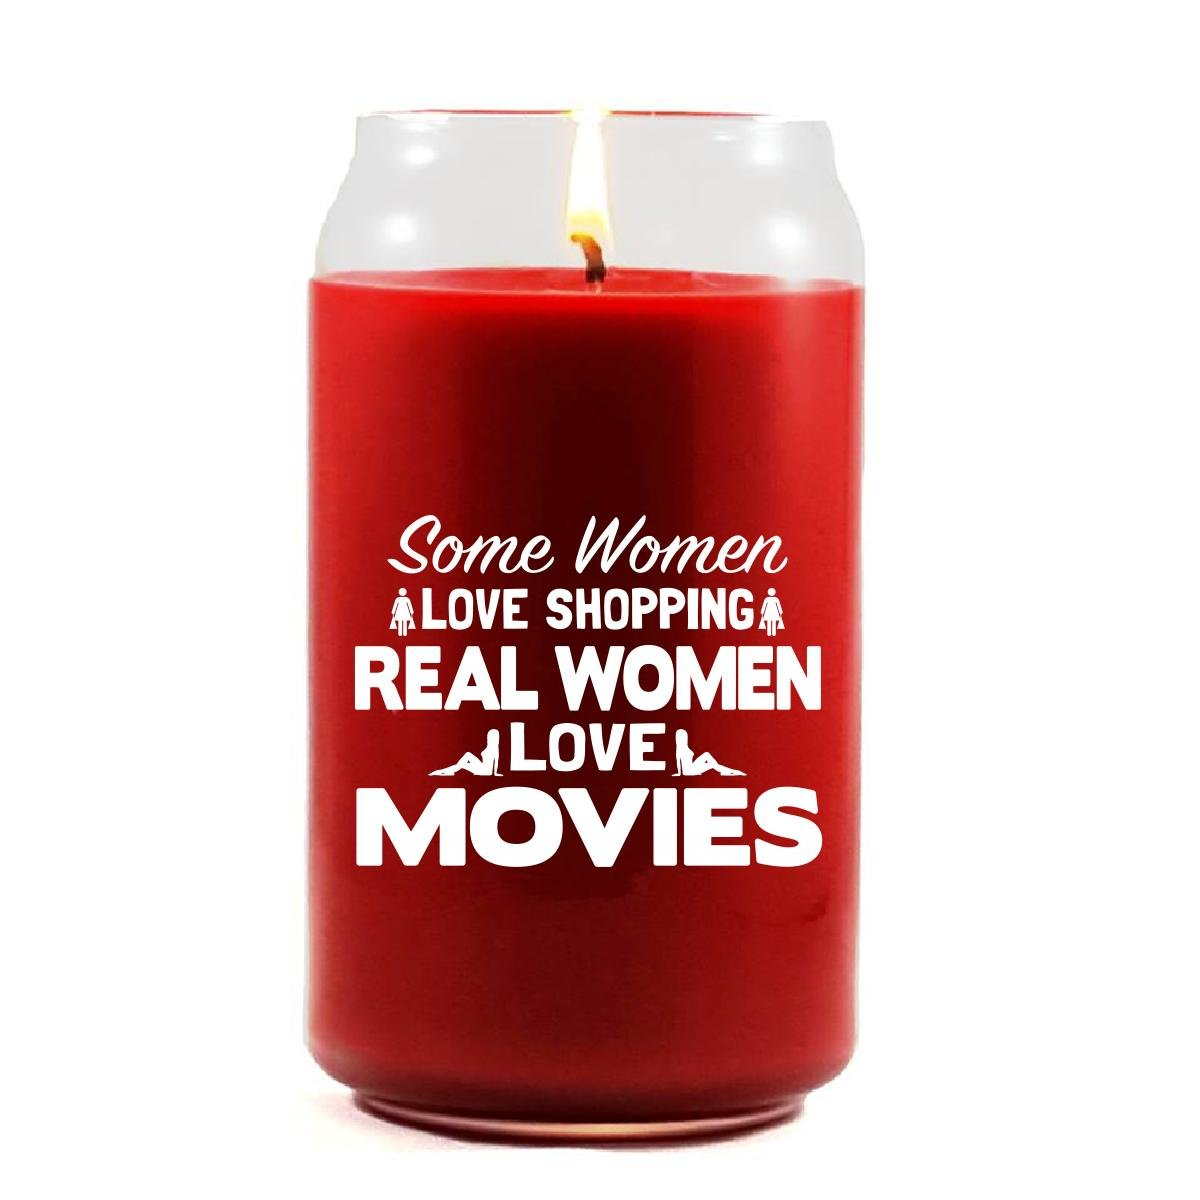 Some Women Love Shopping Real Women Love MOVIES - Scented Candle